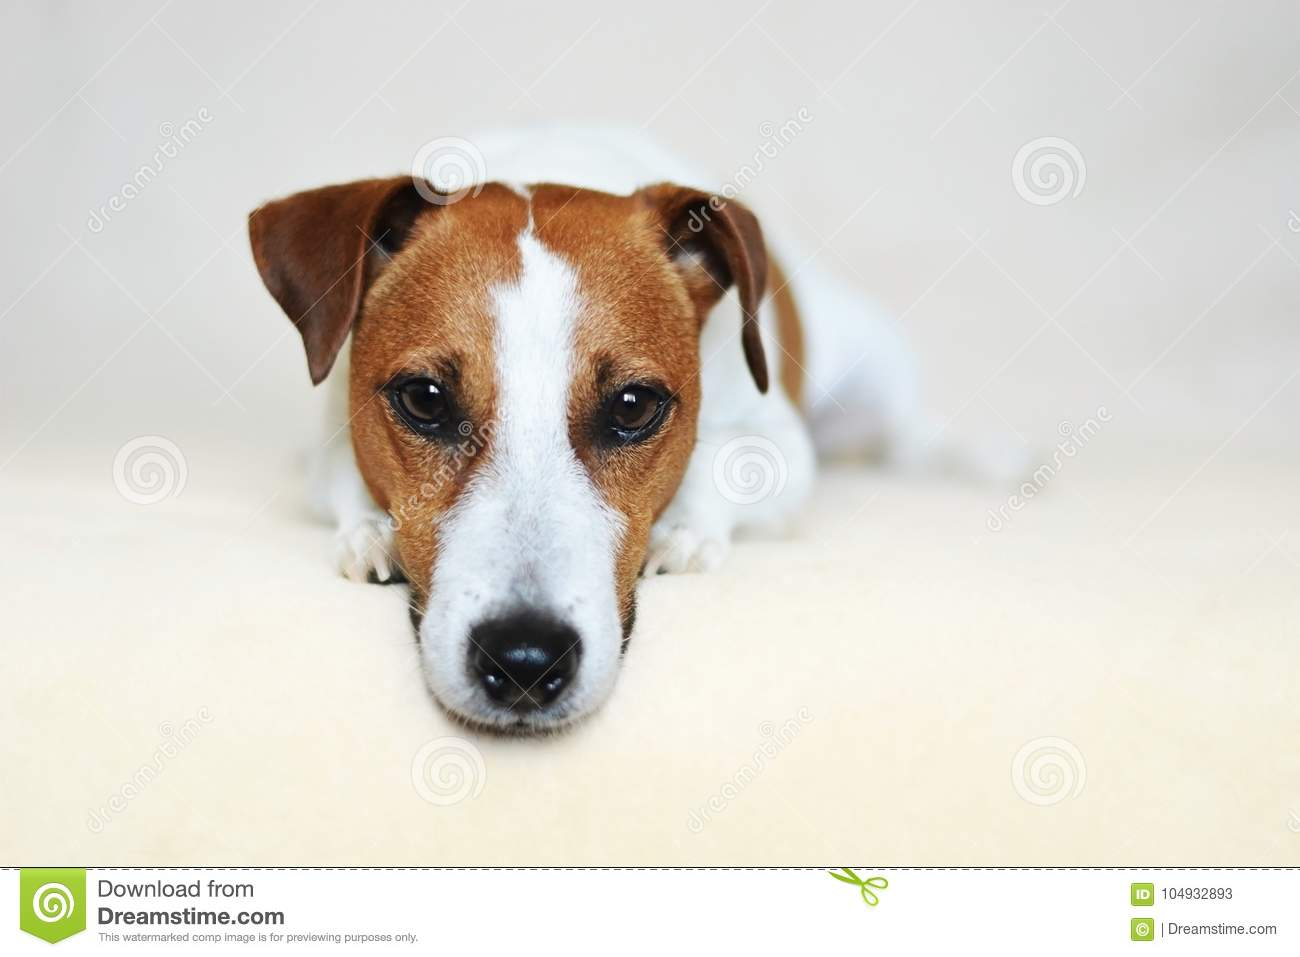 Jack Russell Terrier Dog with Sharp Puppy Dog Eyes